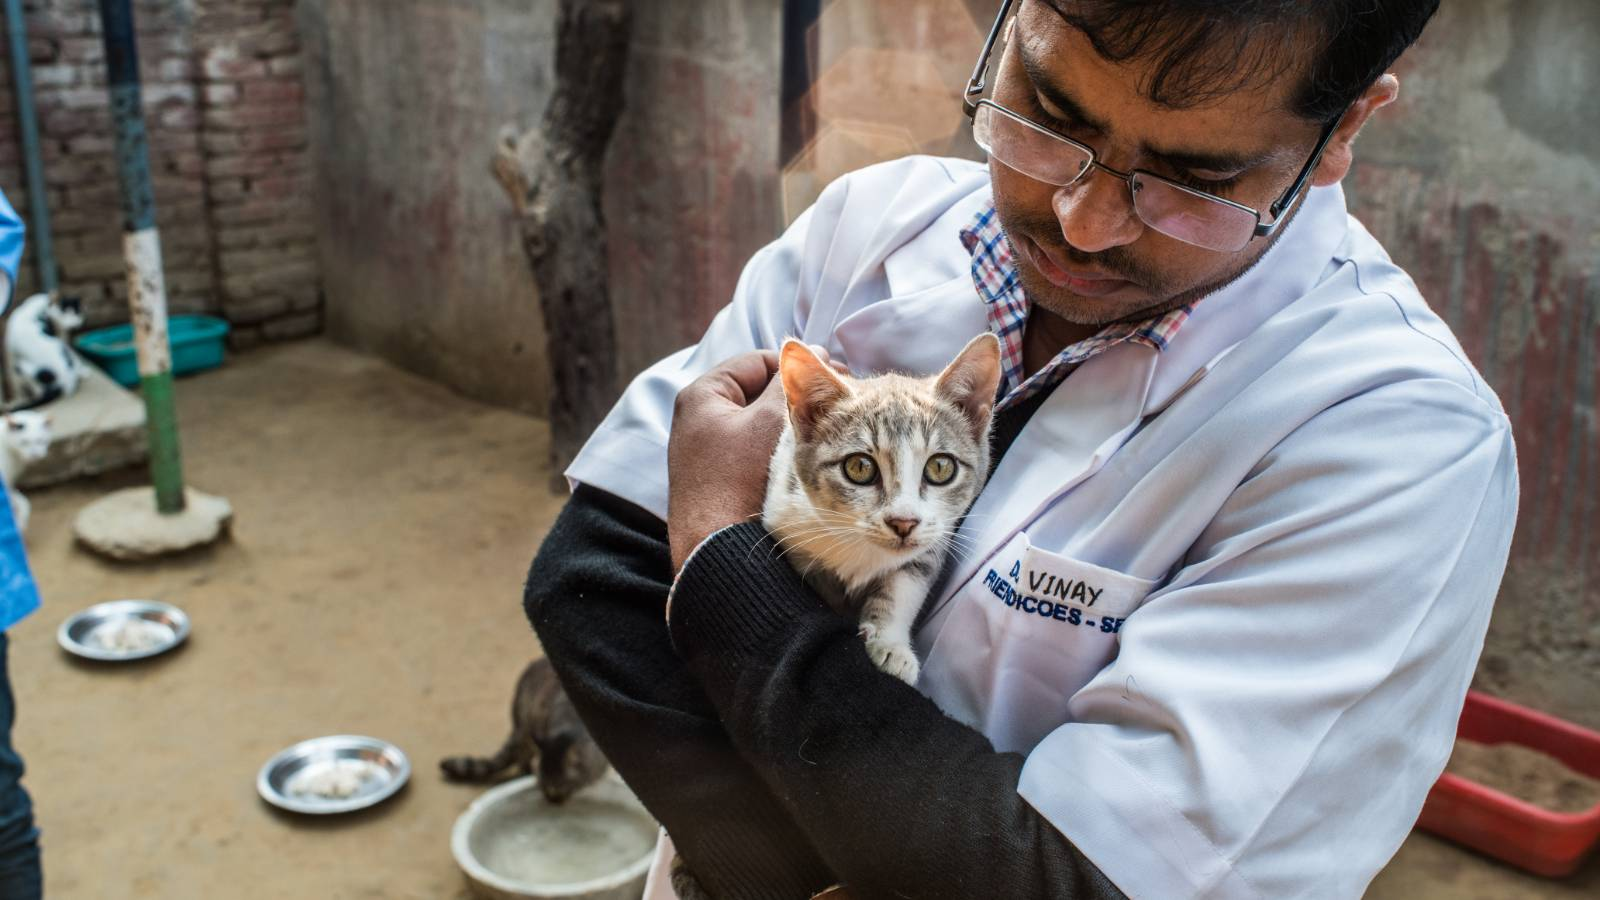 Tender moment between our vet and an injured cat